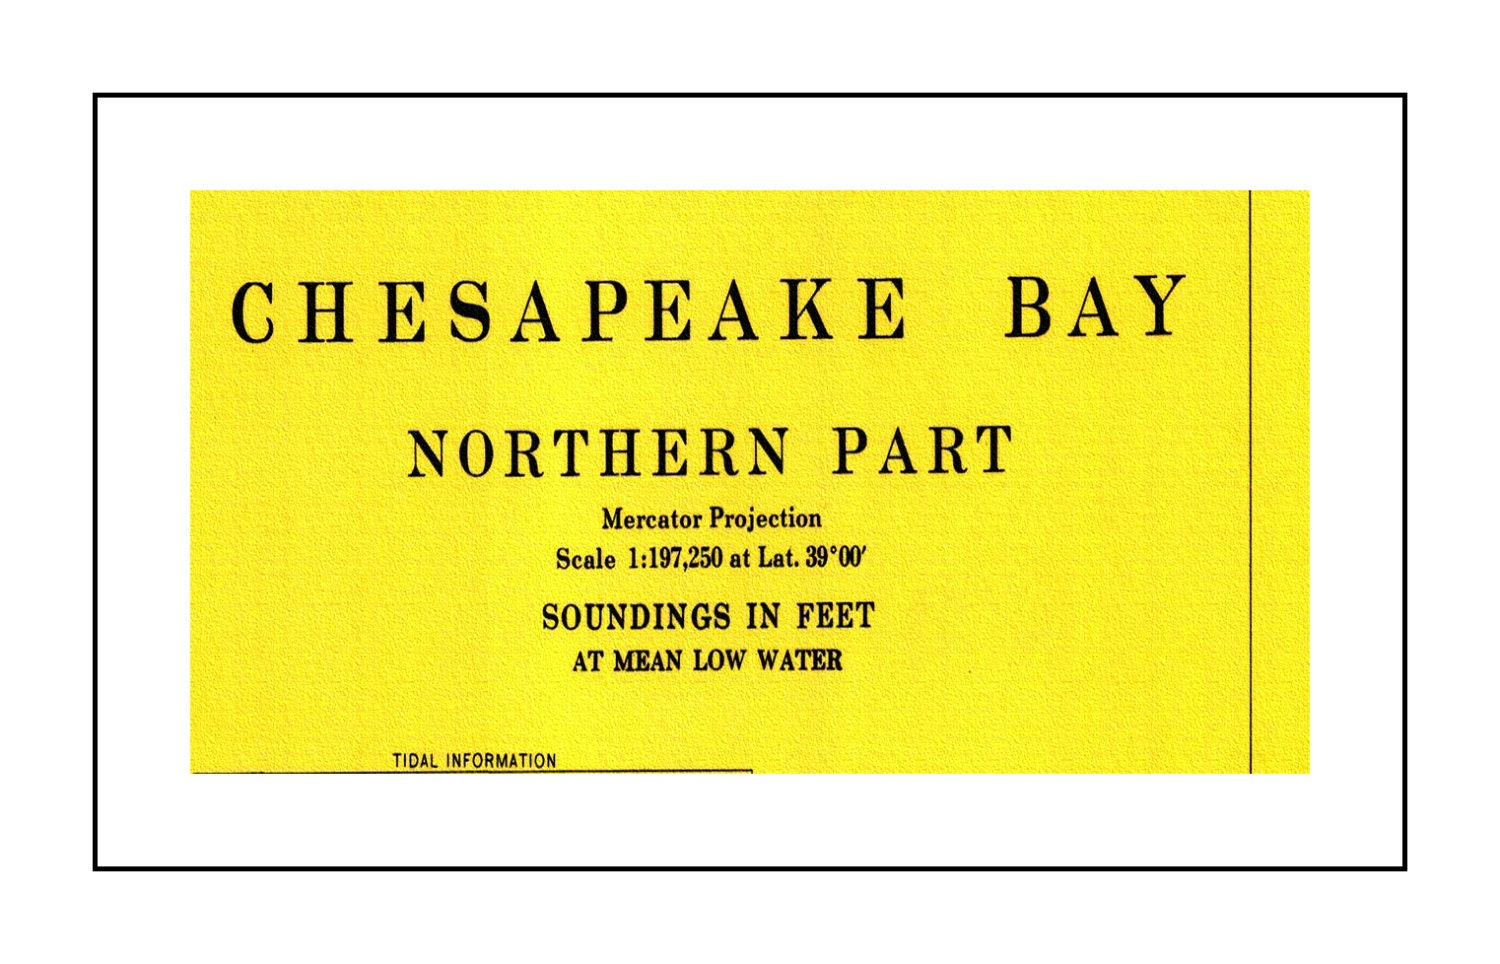 Chesapeake bay nautical chart nautical chart chesapeake bay chesapeake bay nautical chart nautical chart chesapeake bay maryland map virginia map sailing map sailing art nautical print 1968 nvjuhfo Gallery